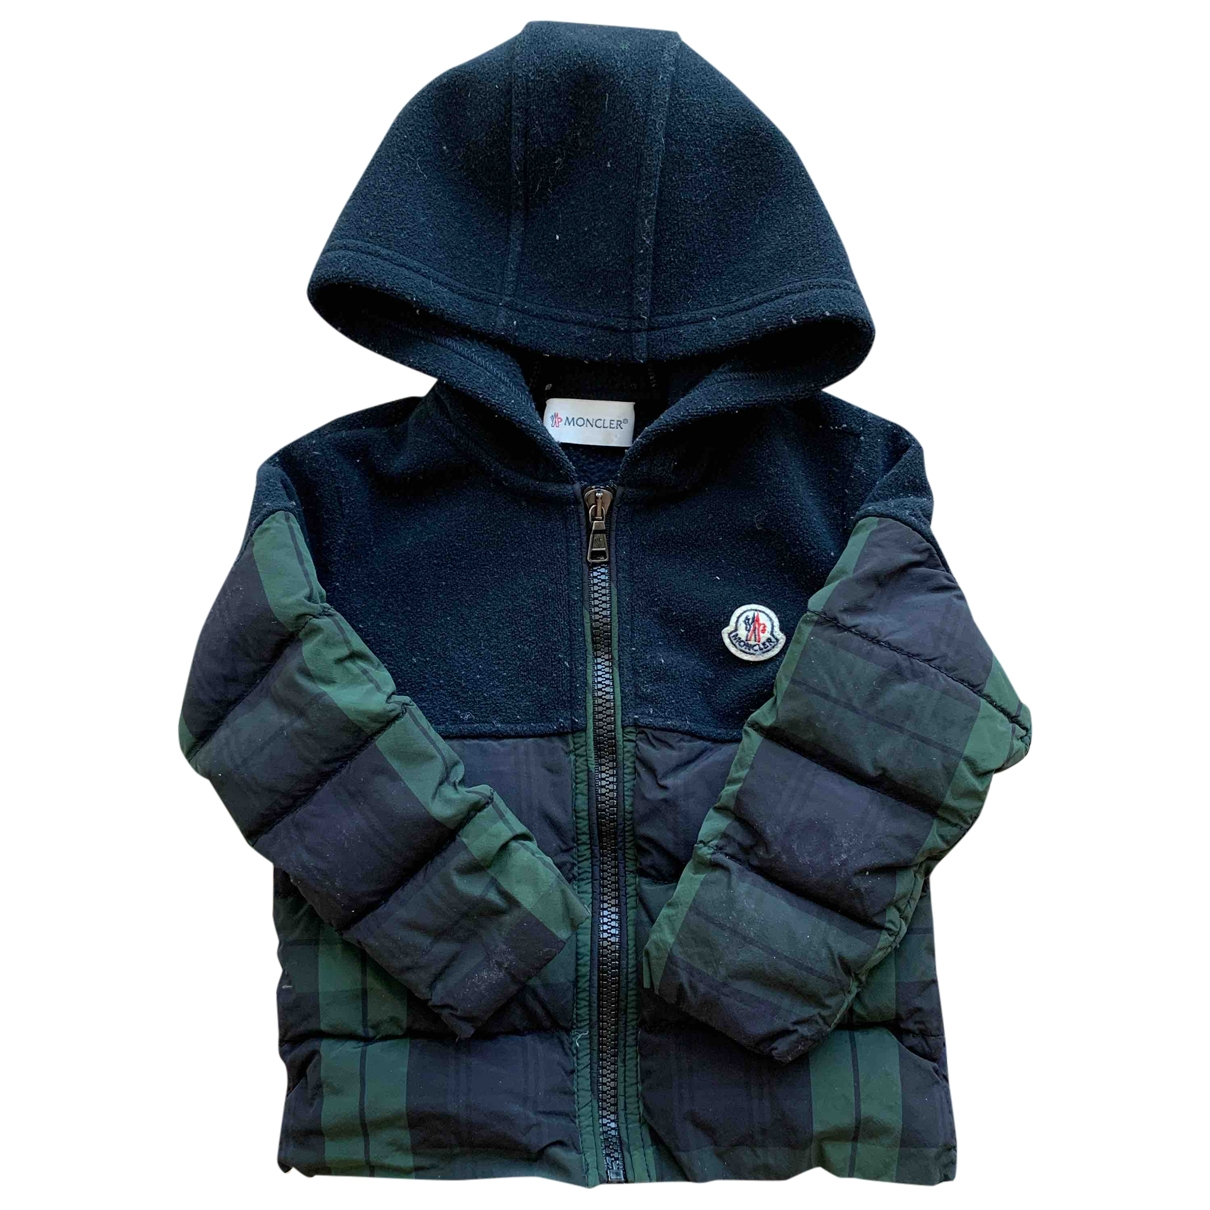 Moncler \N Multicolour jacket & coat for Kids 2 years - up to 86cm FR